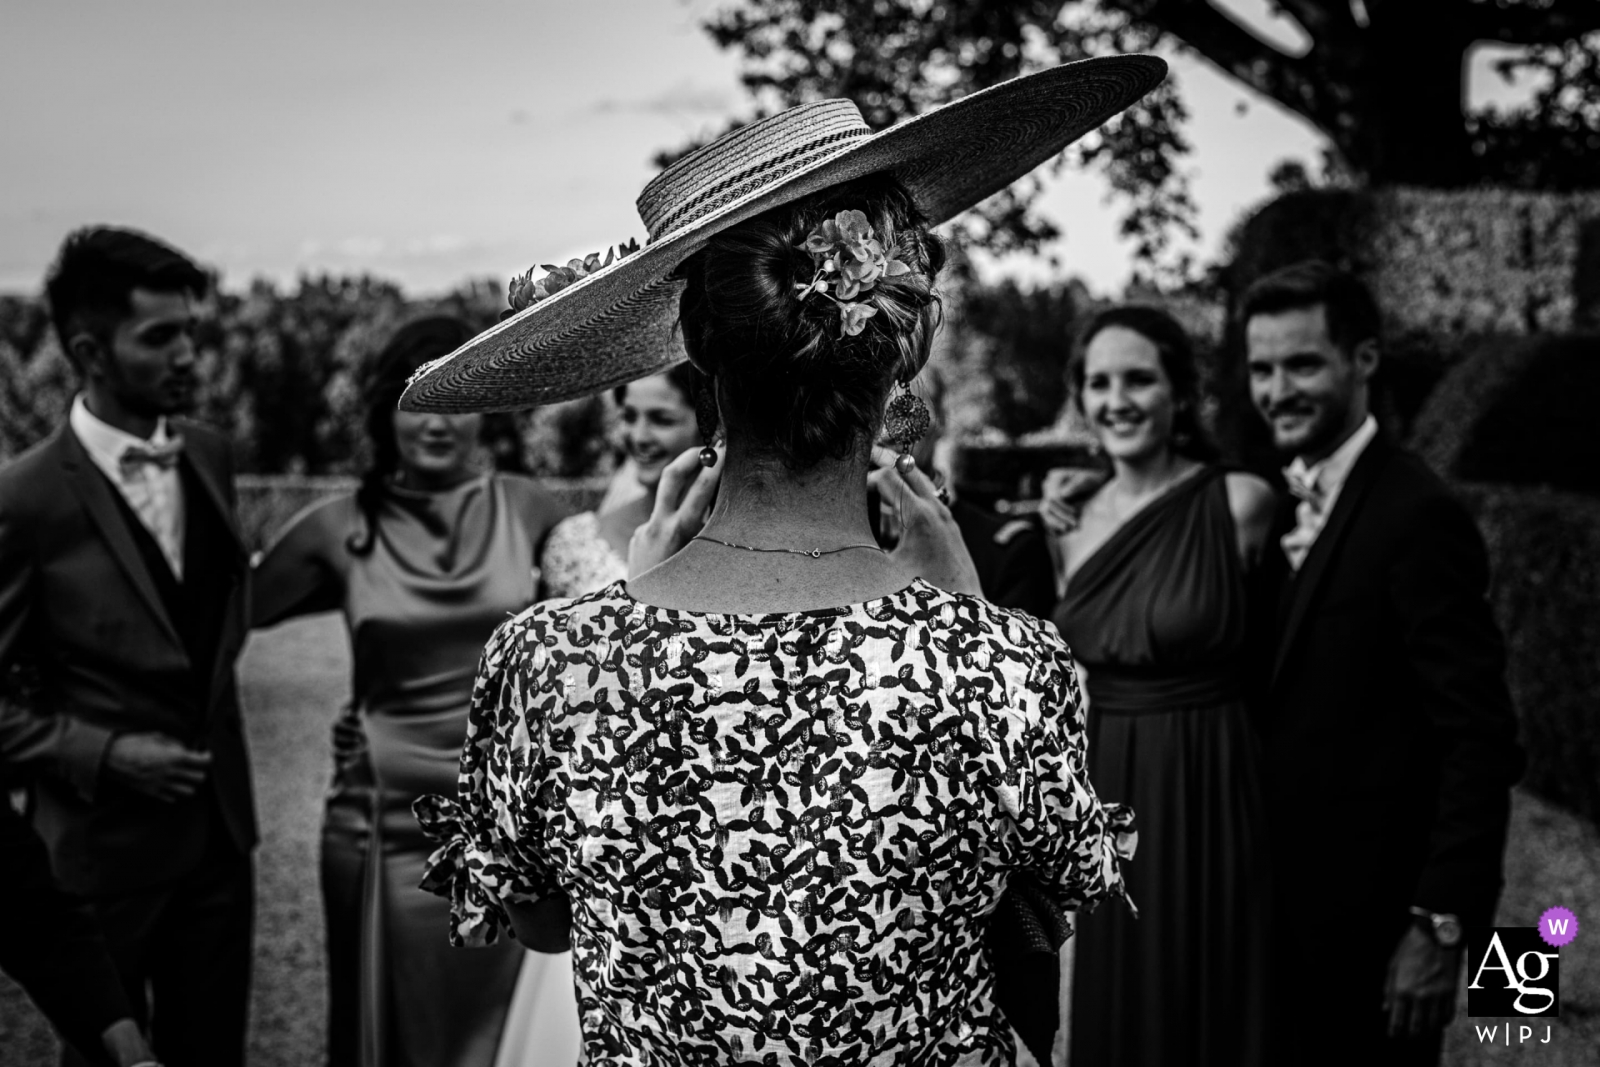 Domaine de rochemontes, France - there's a photographer behind this hat